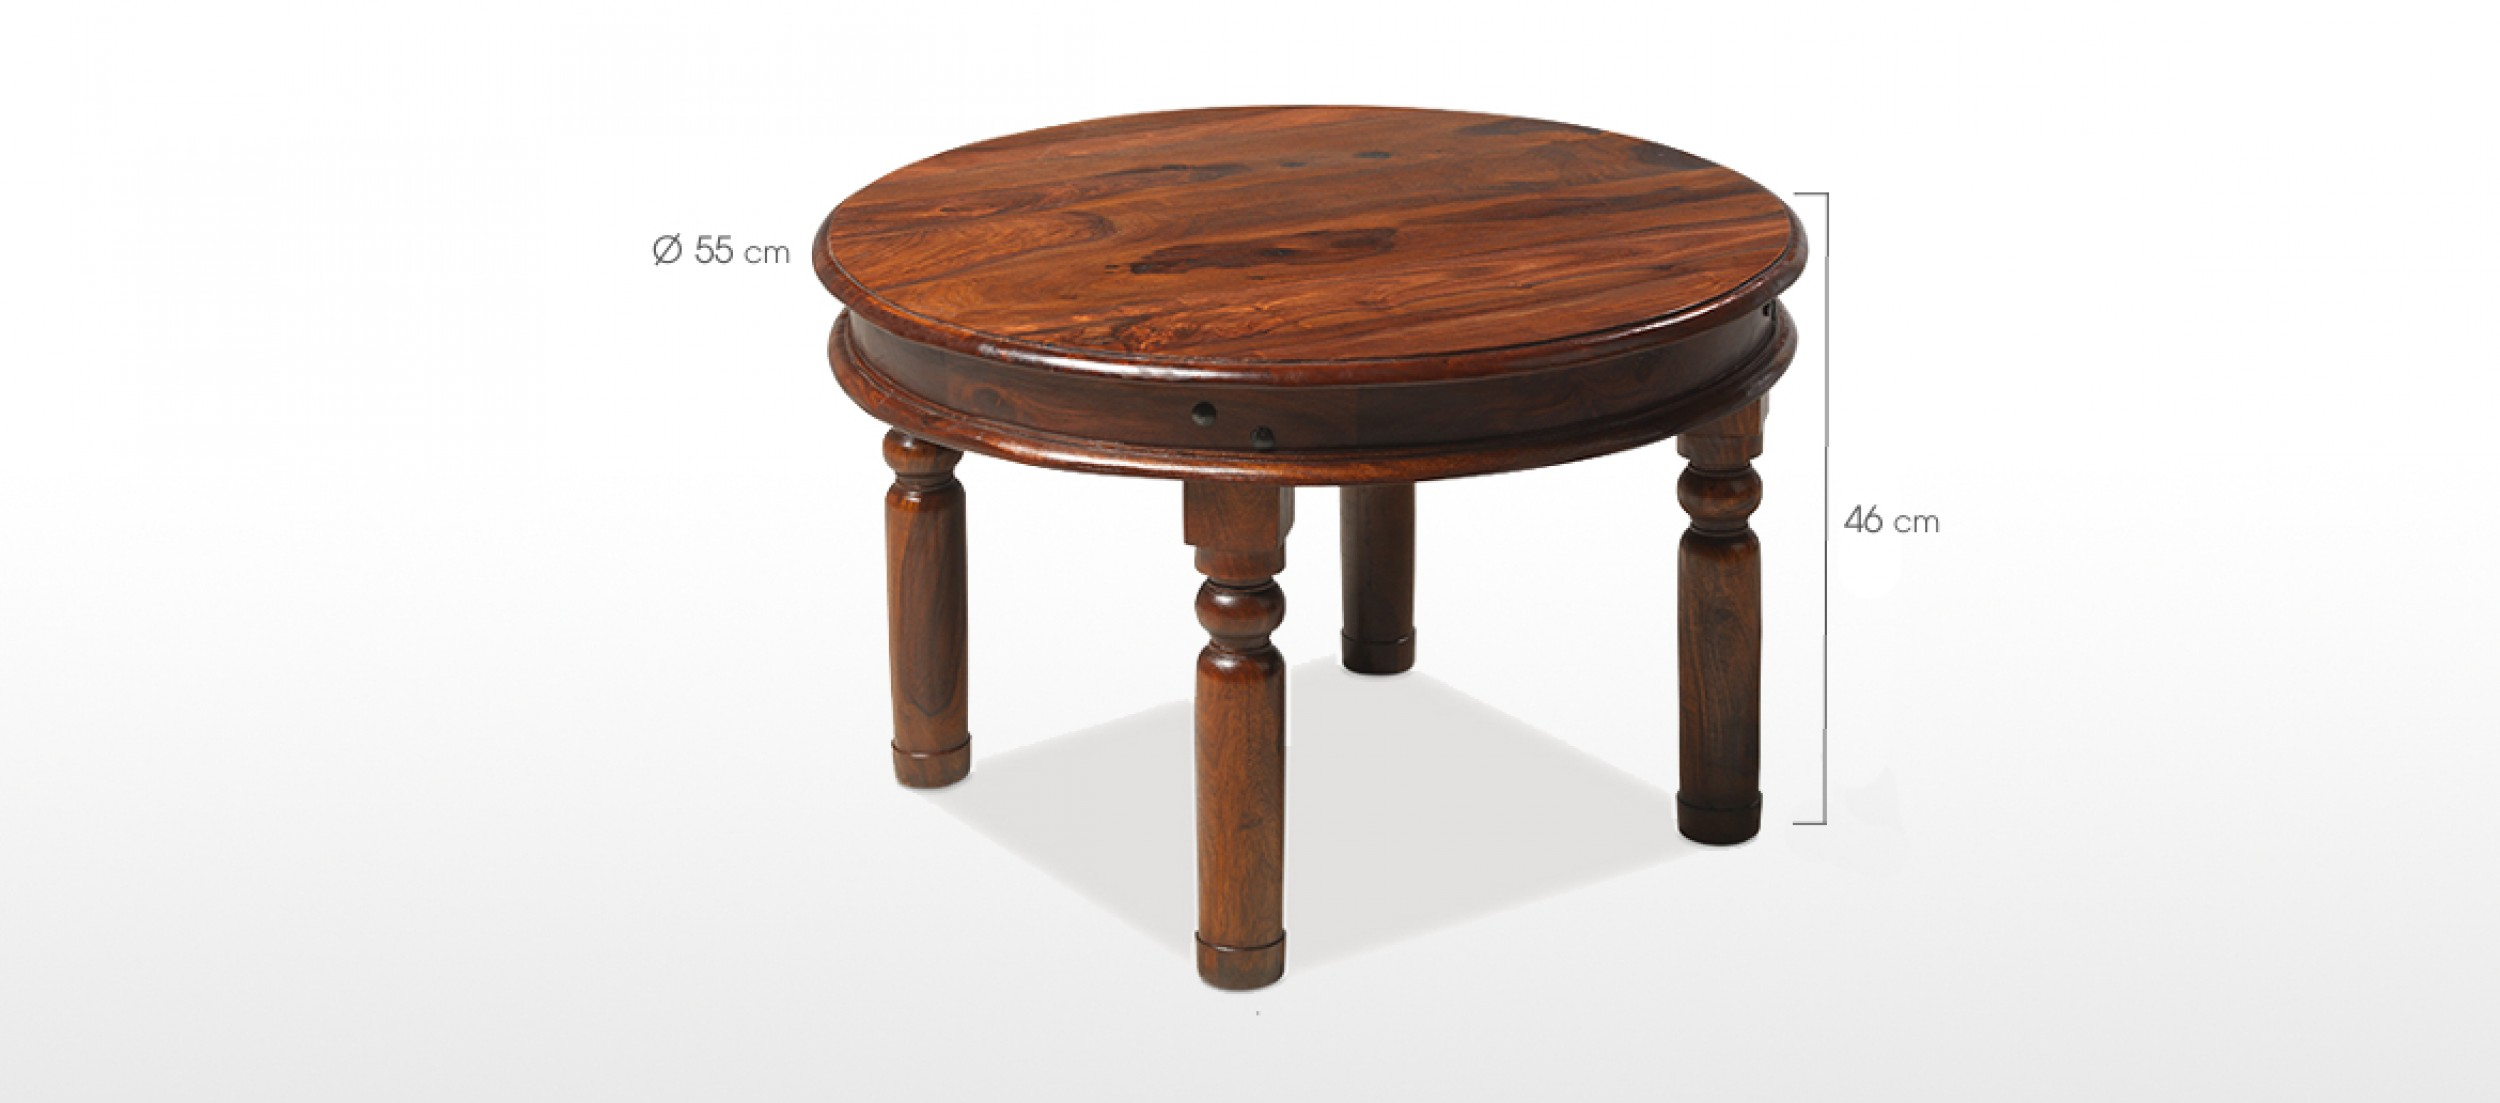 Jali sheesham 55 cm round thakat coffee table quercus living - Dimension table 6 personnes ...